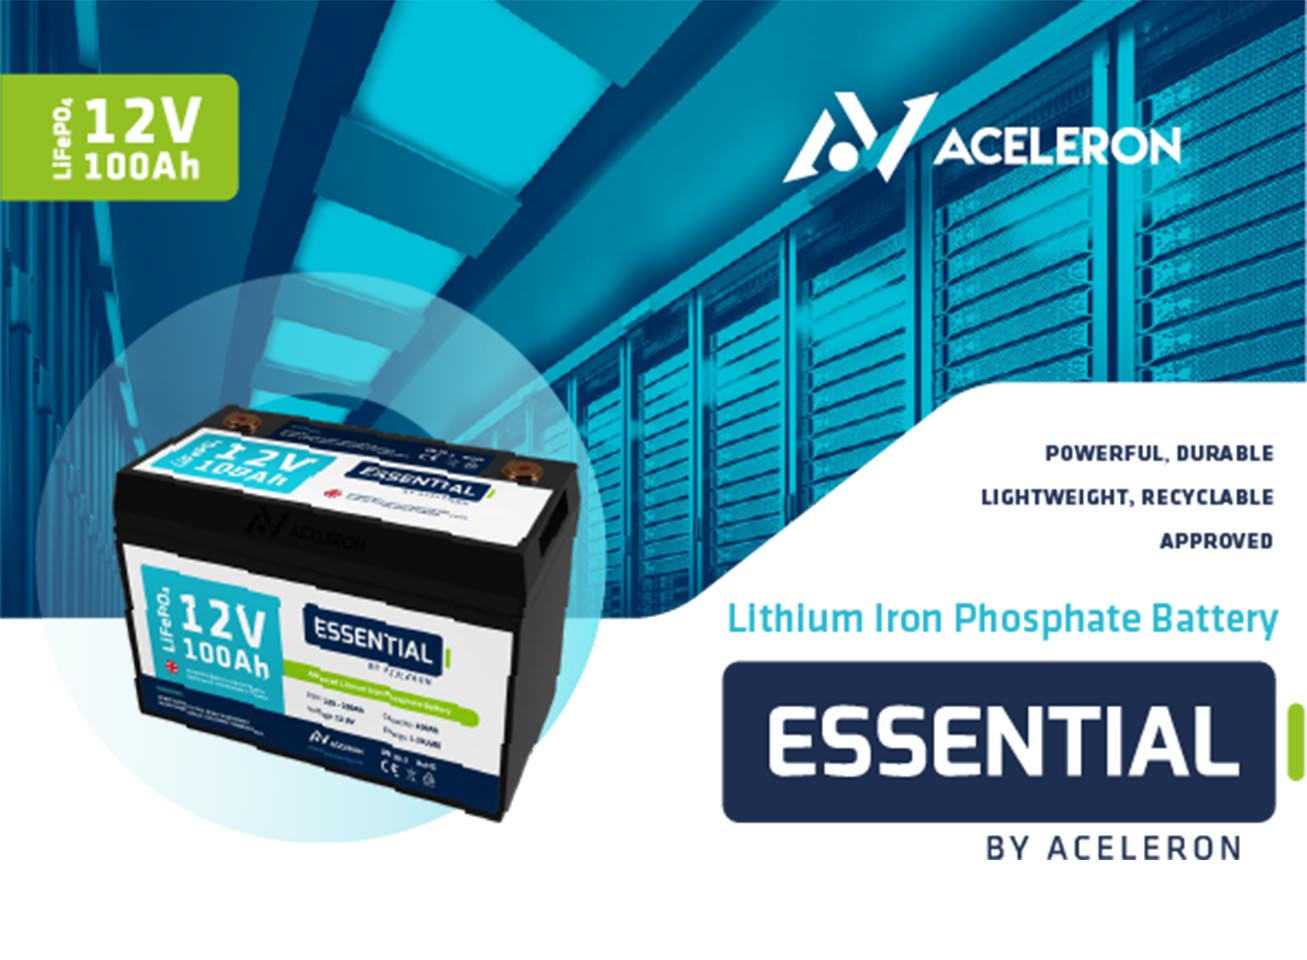 Essential By Aceleron – Lithium Iron Phosphate Battery